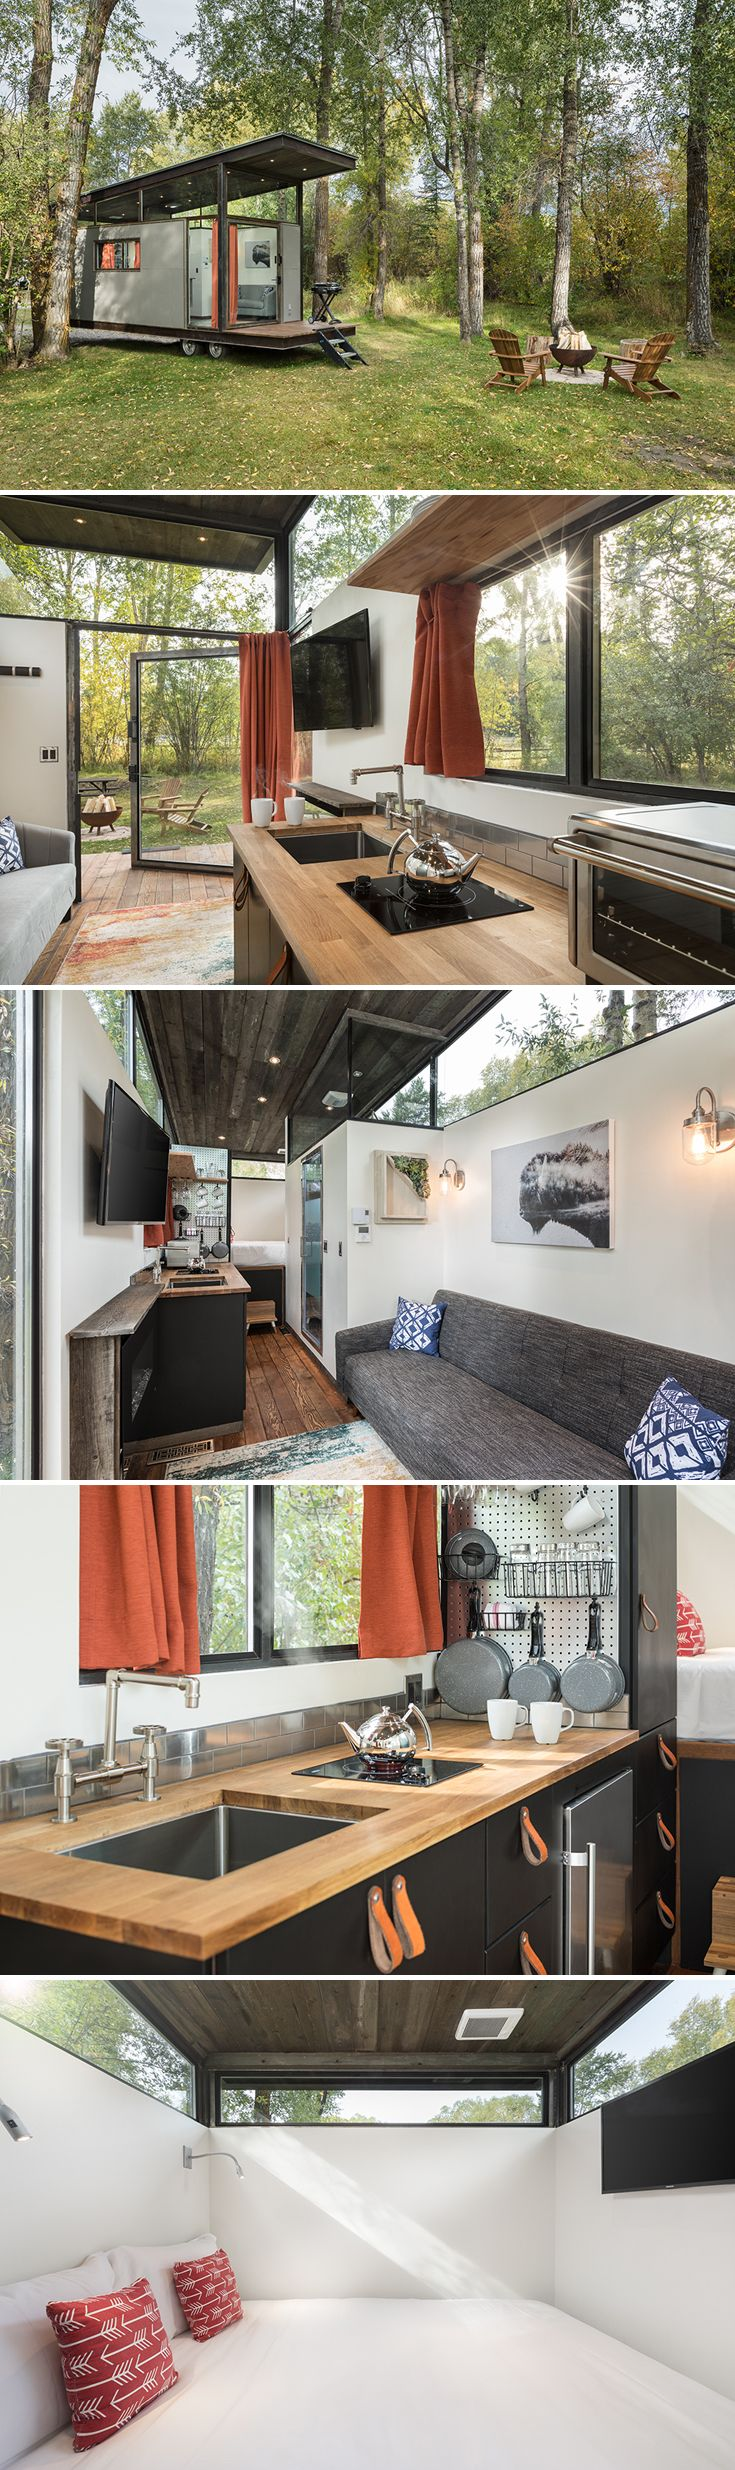 Based on their Wedge model, the RoadHaus by Wheelhaus offers a smaller footprint while still providing a main floor bedroom and wrap-around upper windows.